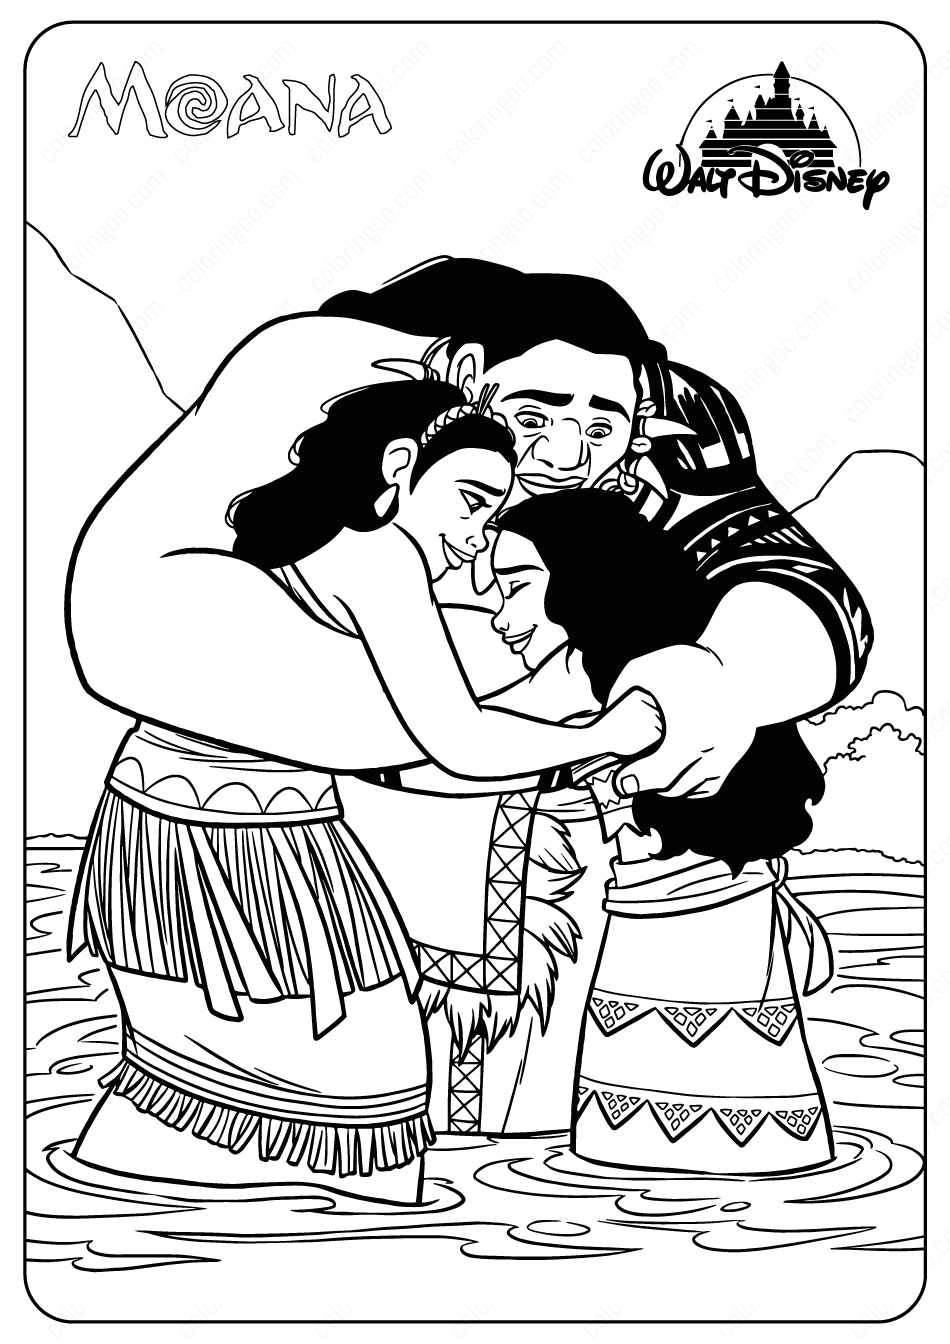 Moana And Her Family Coloring Page Moana Coloring Pages Moana Coloring Disney Princess Coloring Pages [ 1344 x 950 Pixel ]